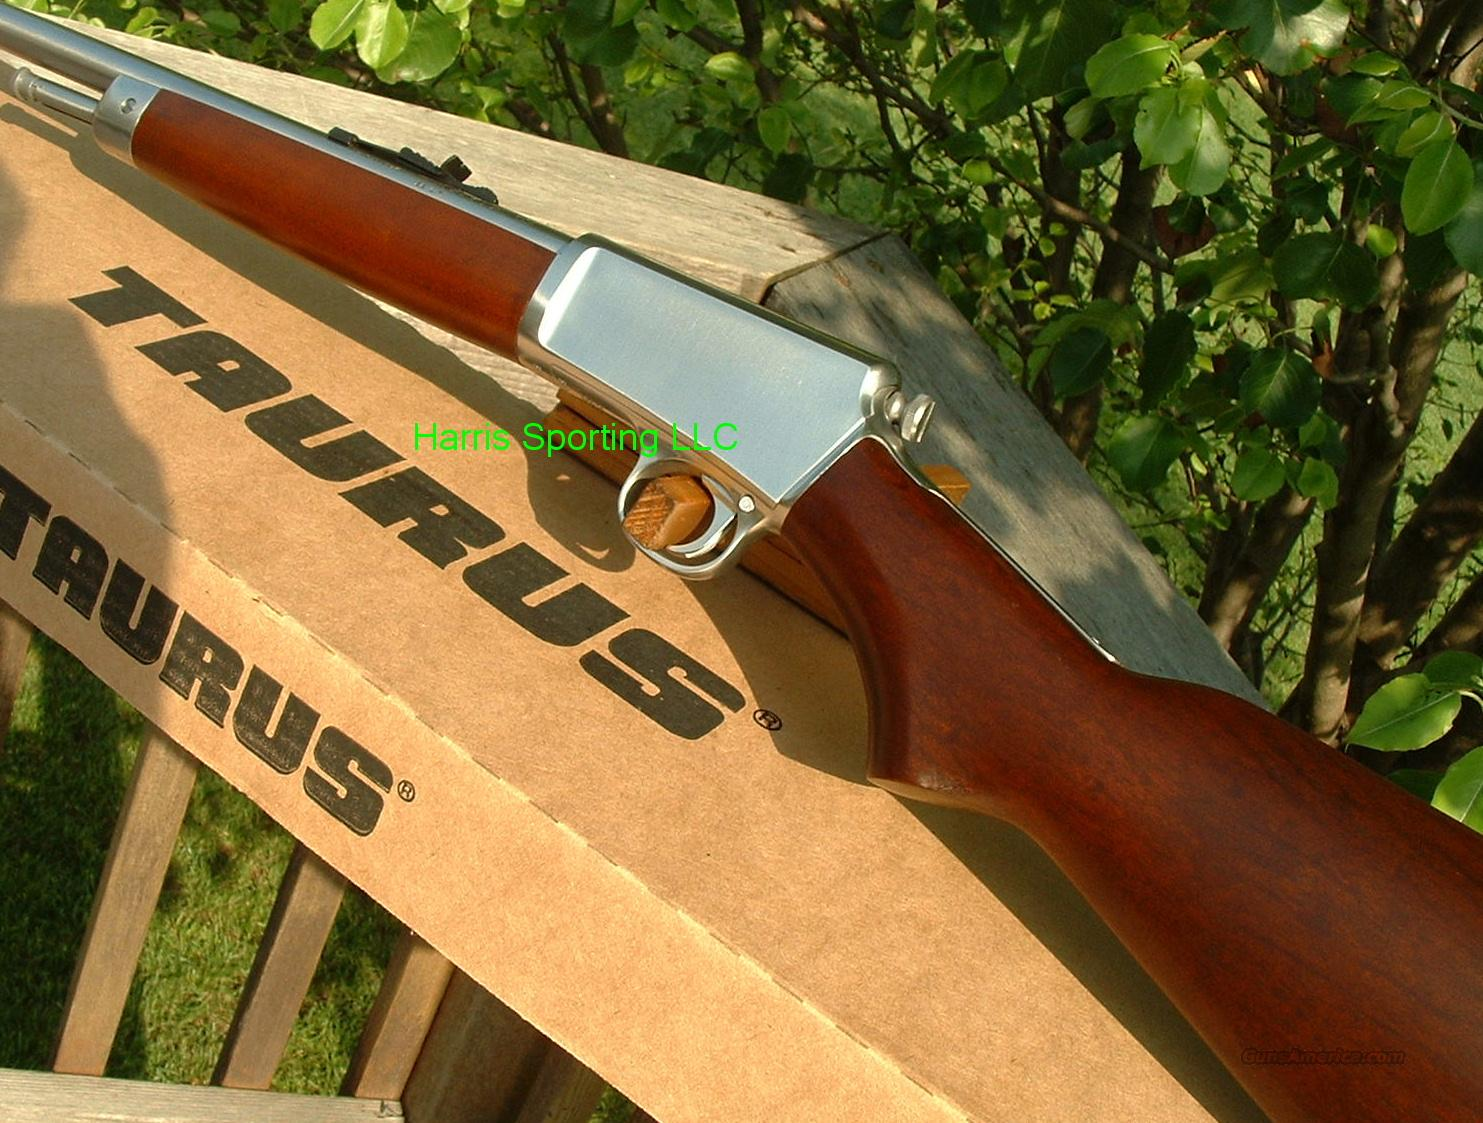 Taurus 63 Stainless TD 22 LR   NEW  Guns > Rifles > Taurus Rifles